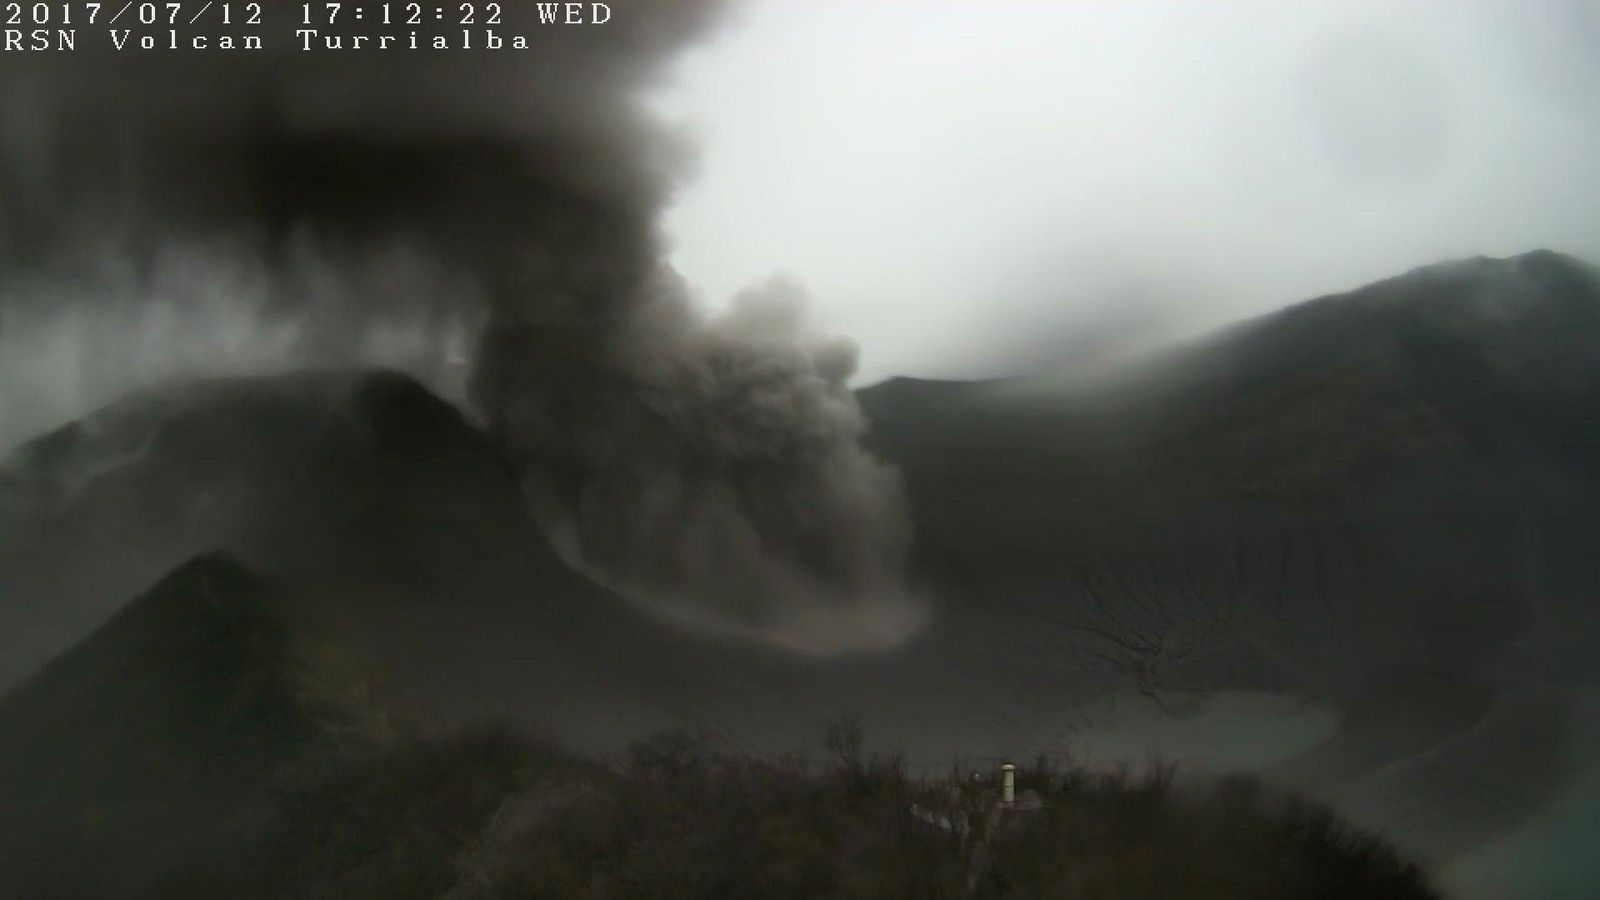 Turrialba - 12.07.2017 / 17h12 - webcam RSN